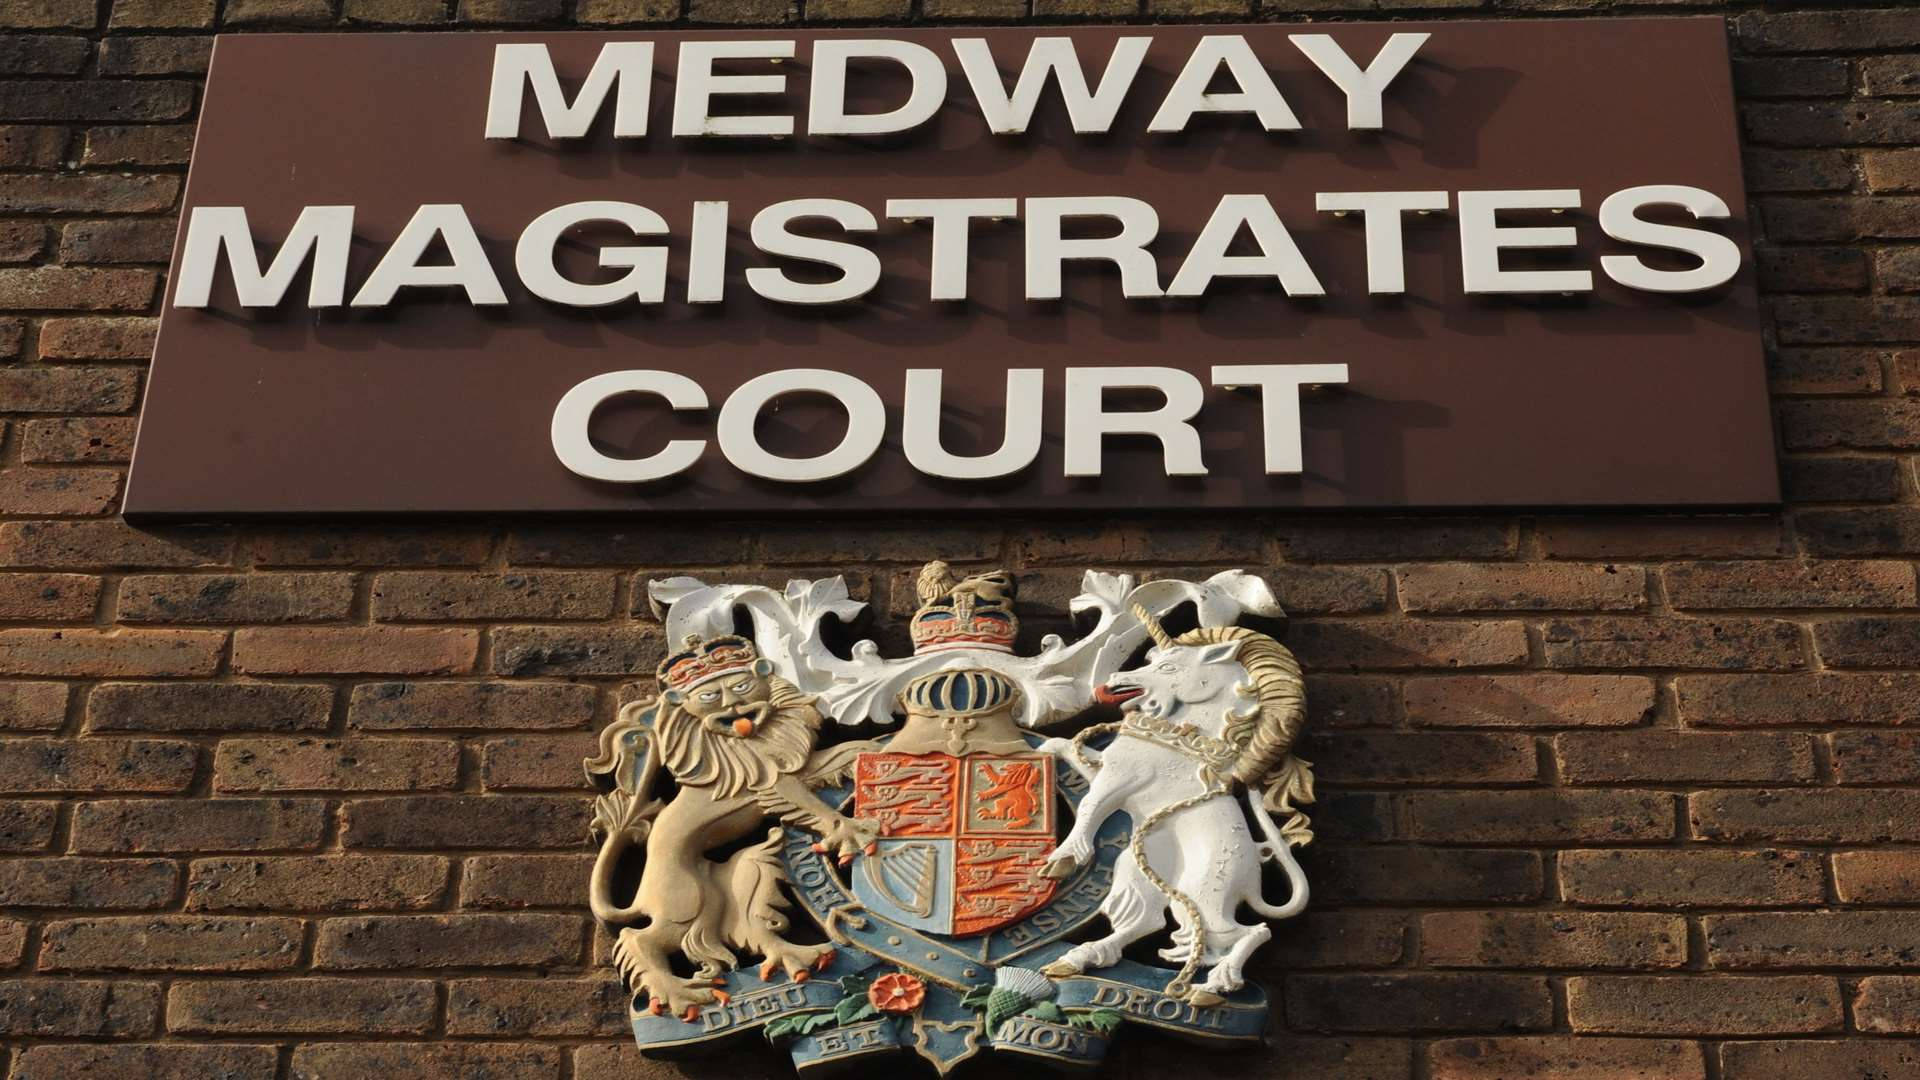 The case was heard at Medway Magistrates Court